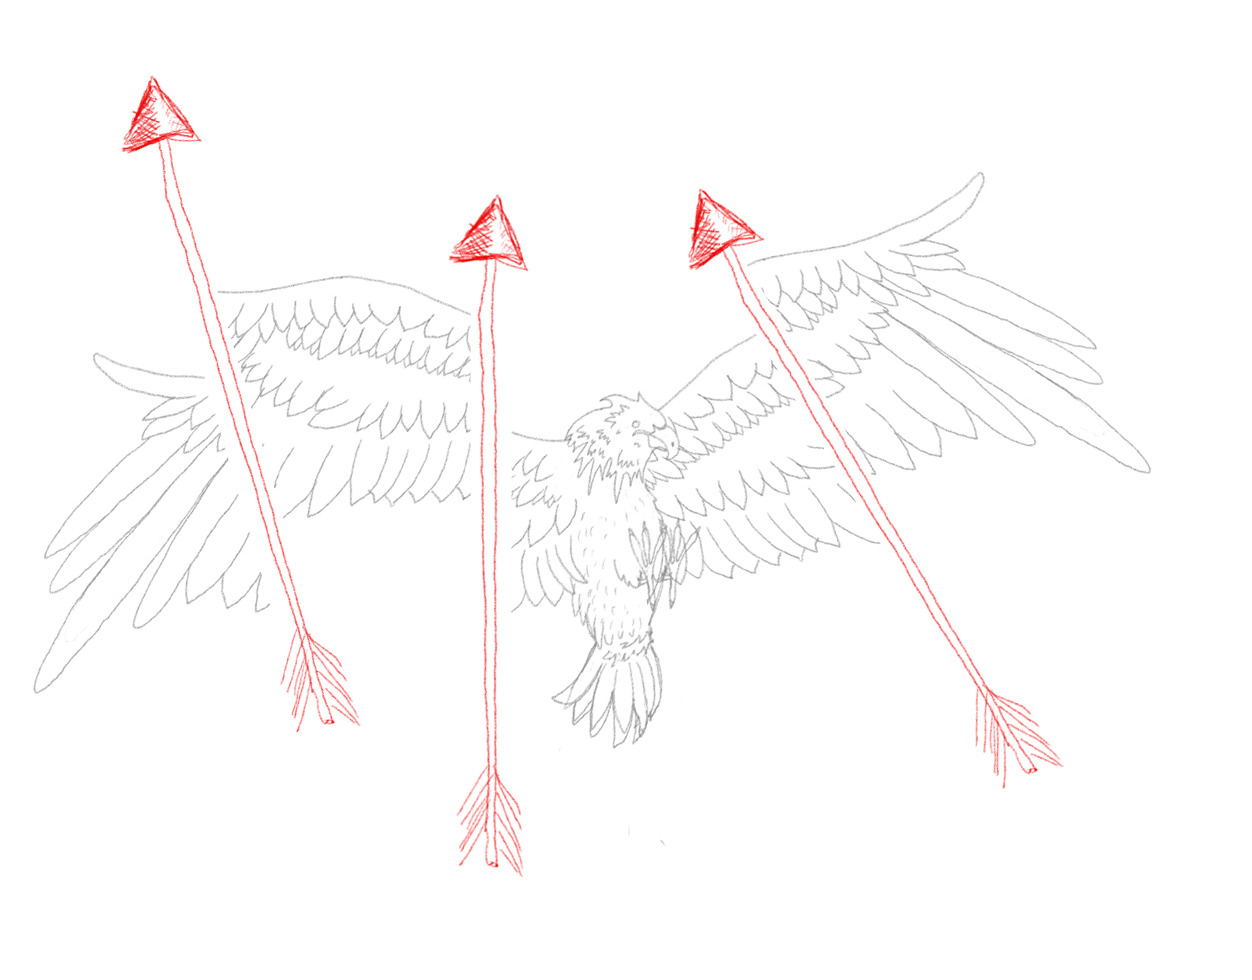 """Eagle in the Sky Arrows Fly High"". A step closer to what I had pictured. Now to do some computer related tricks.  I always upload my work onto EatSleepDraw.com, and usually i get a couple of hundred likes and re-blogs wich is ok right?. My ""A Drop Of Life"" got over 3000. Talk about smashing my own record haha. it will be pretty hard to top that. It's nice to see people enjoy my work. It also helps with my confidence :) Garryhannah.org twitter.com/gh84z"